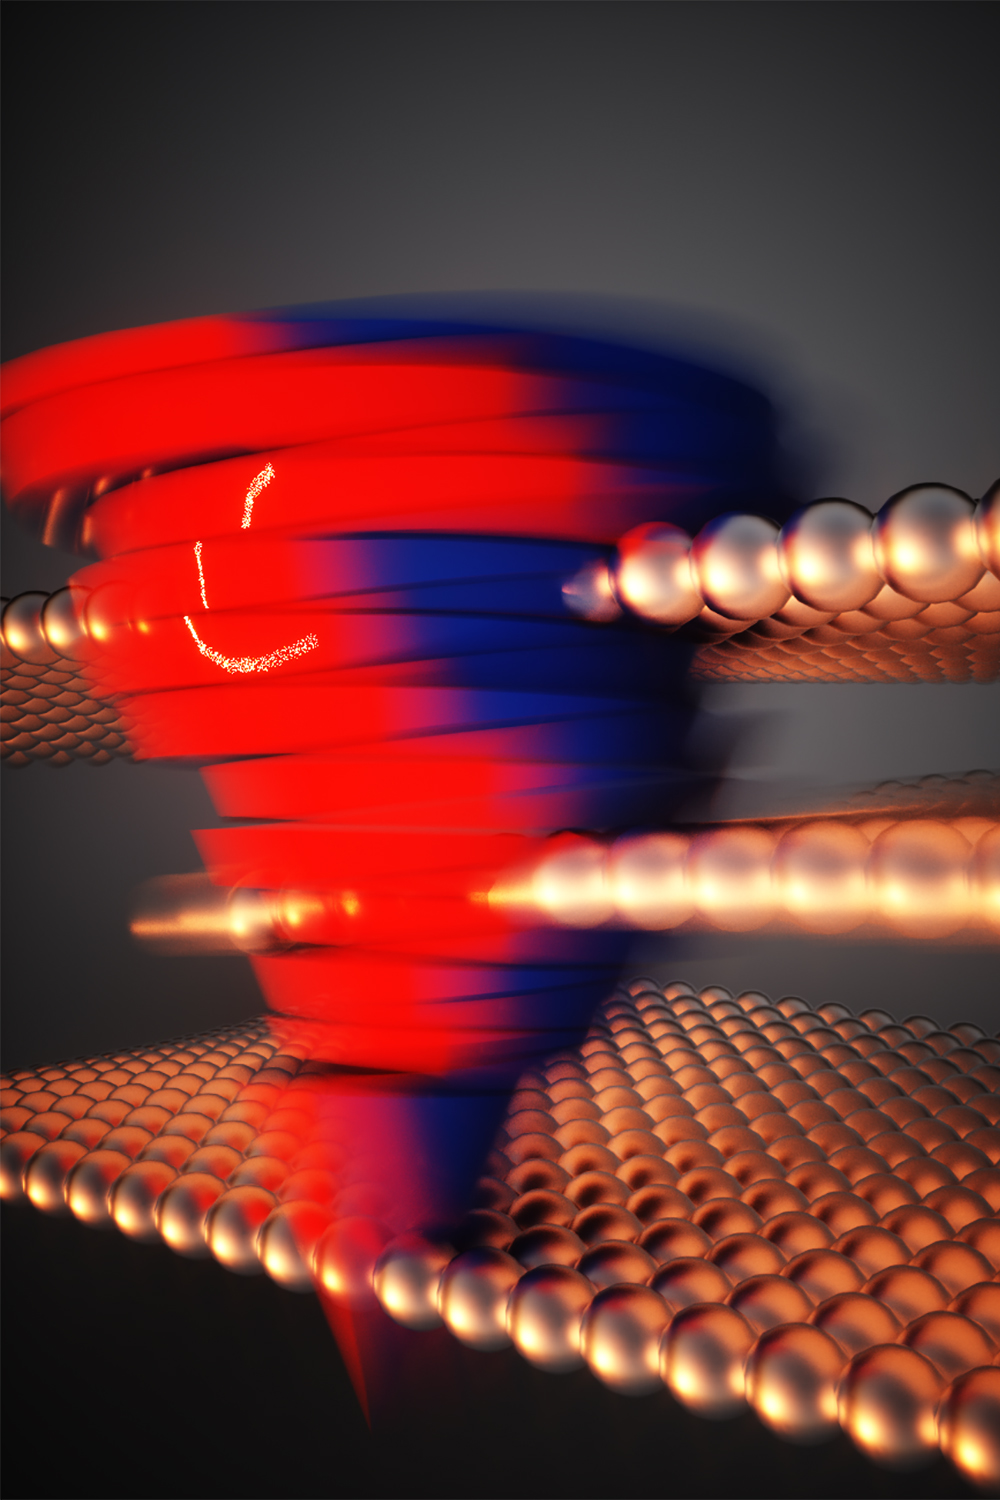 Researchers have encoded data into stacks of two-dimensional materials